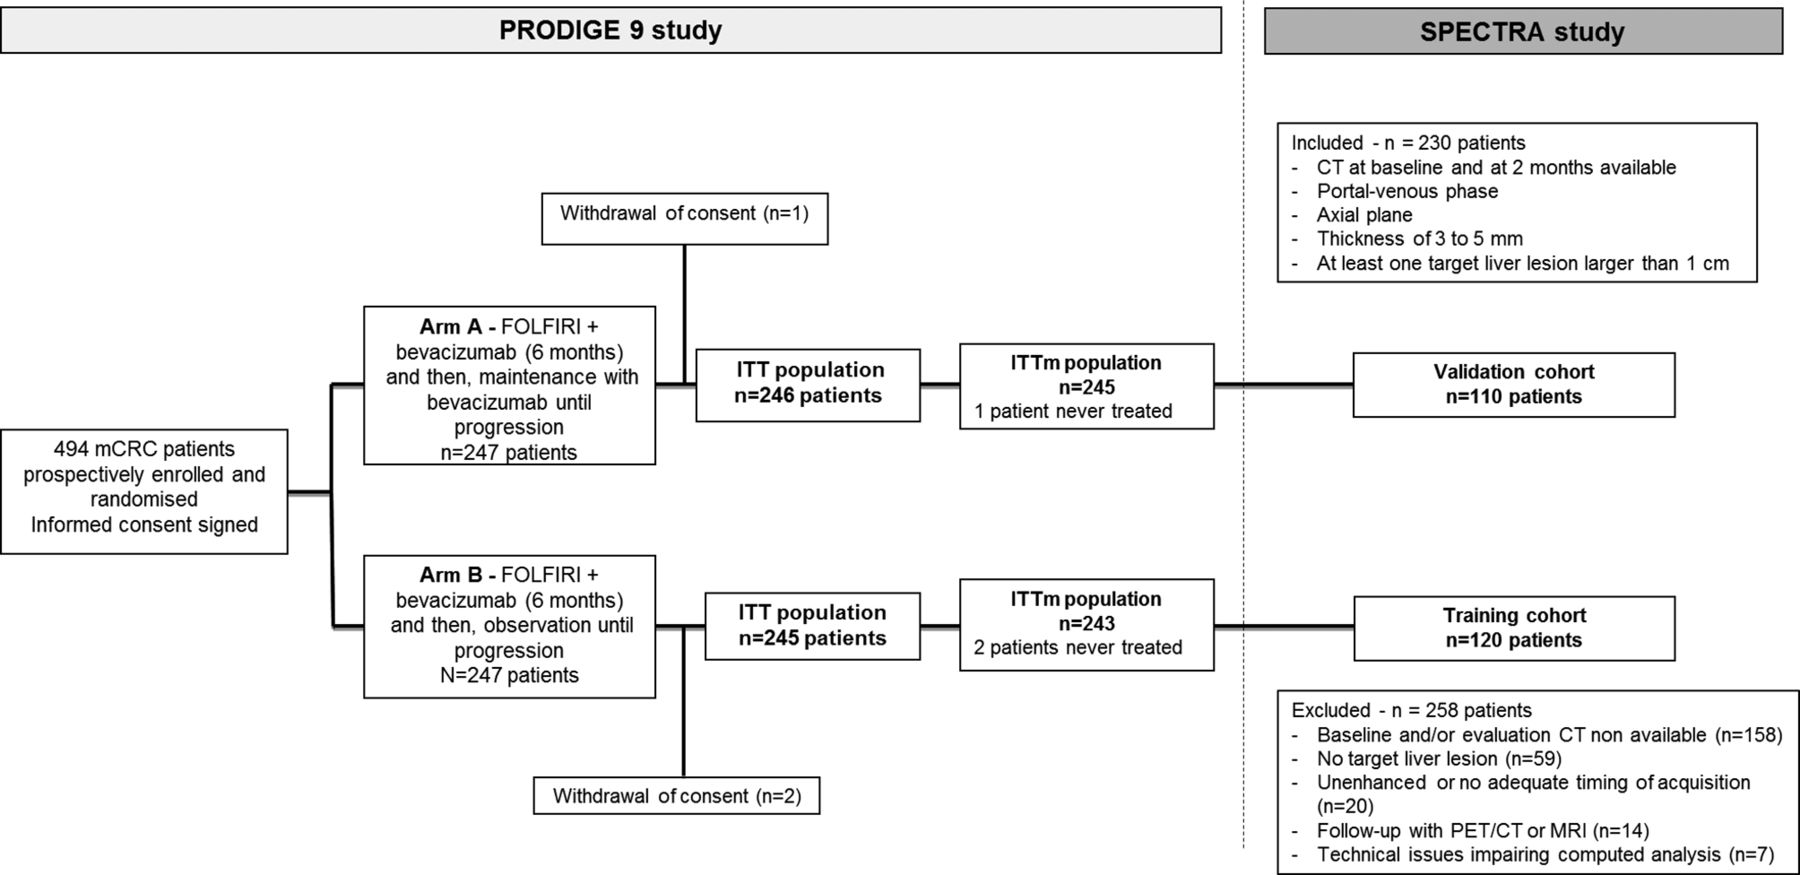 Early Evaluation Using A Radiomic Signature Of Unresectable Hepatic Metastases To Predict Outcome In Patients With Colorectal Cancer Treated With Folfiri And Bevacizumab Gut